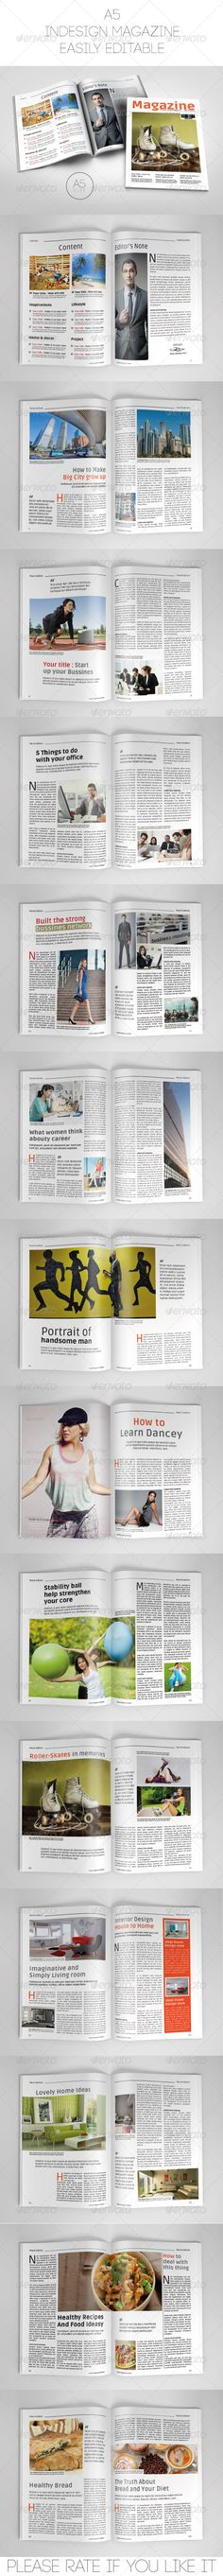 A5 Magazine Template by WattCore A5 Magazine Template (Portrait) This is a professional and clean InDesign magazine template that can be used forany type of indust